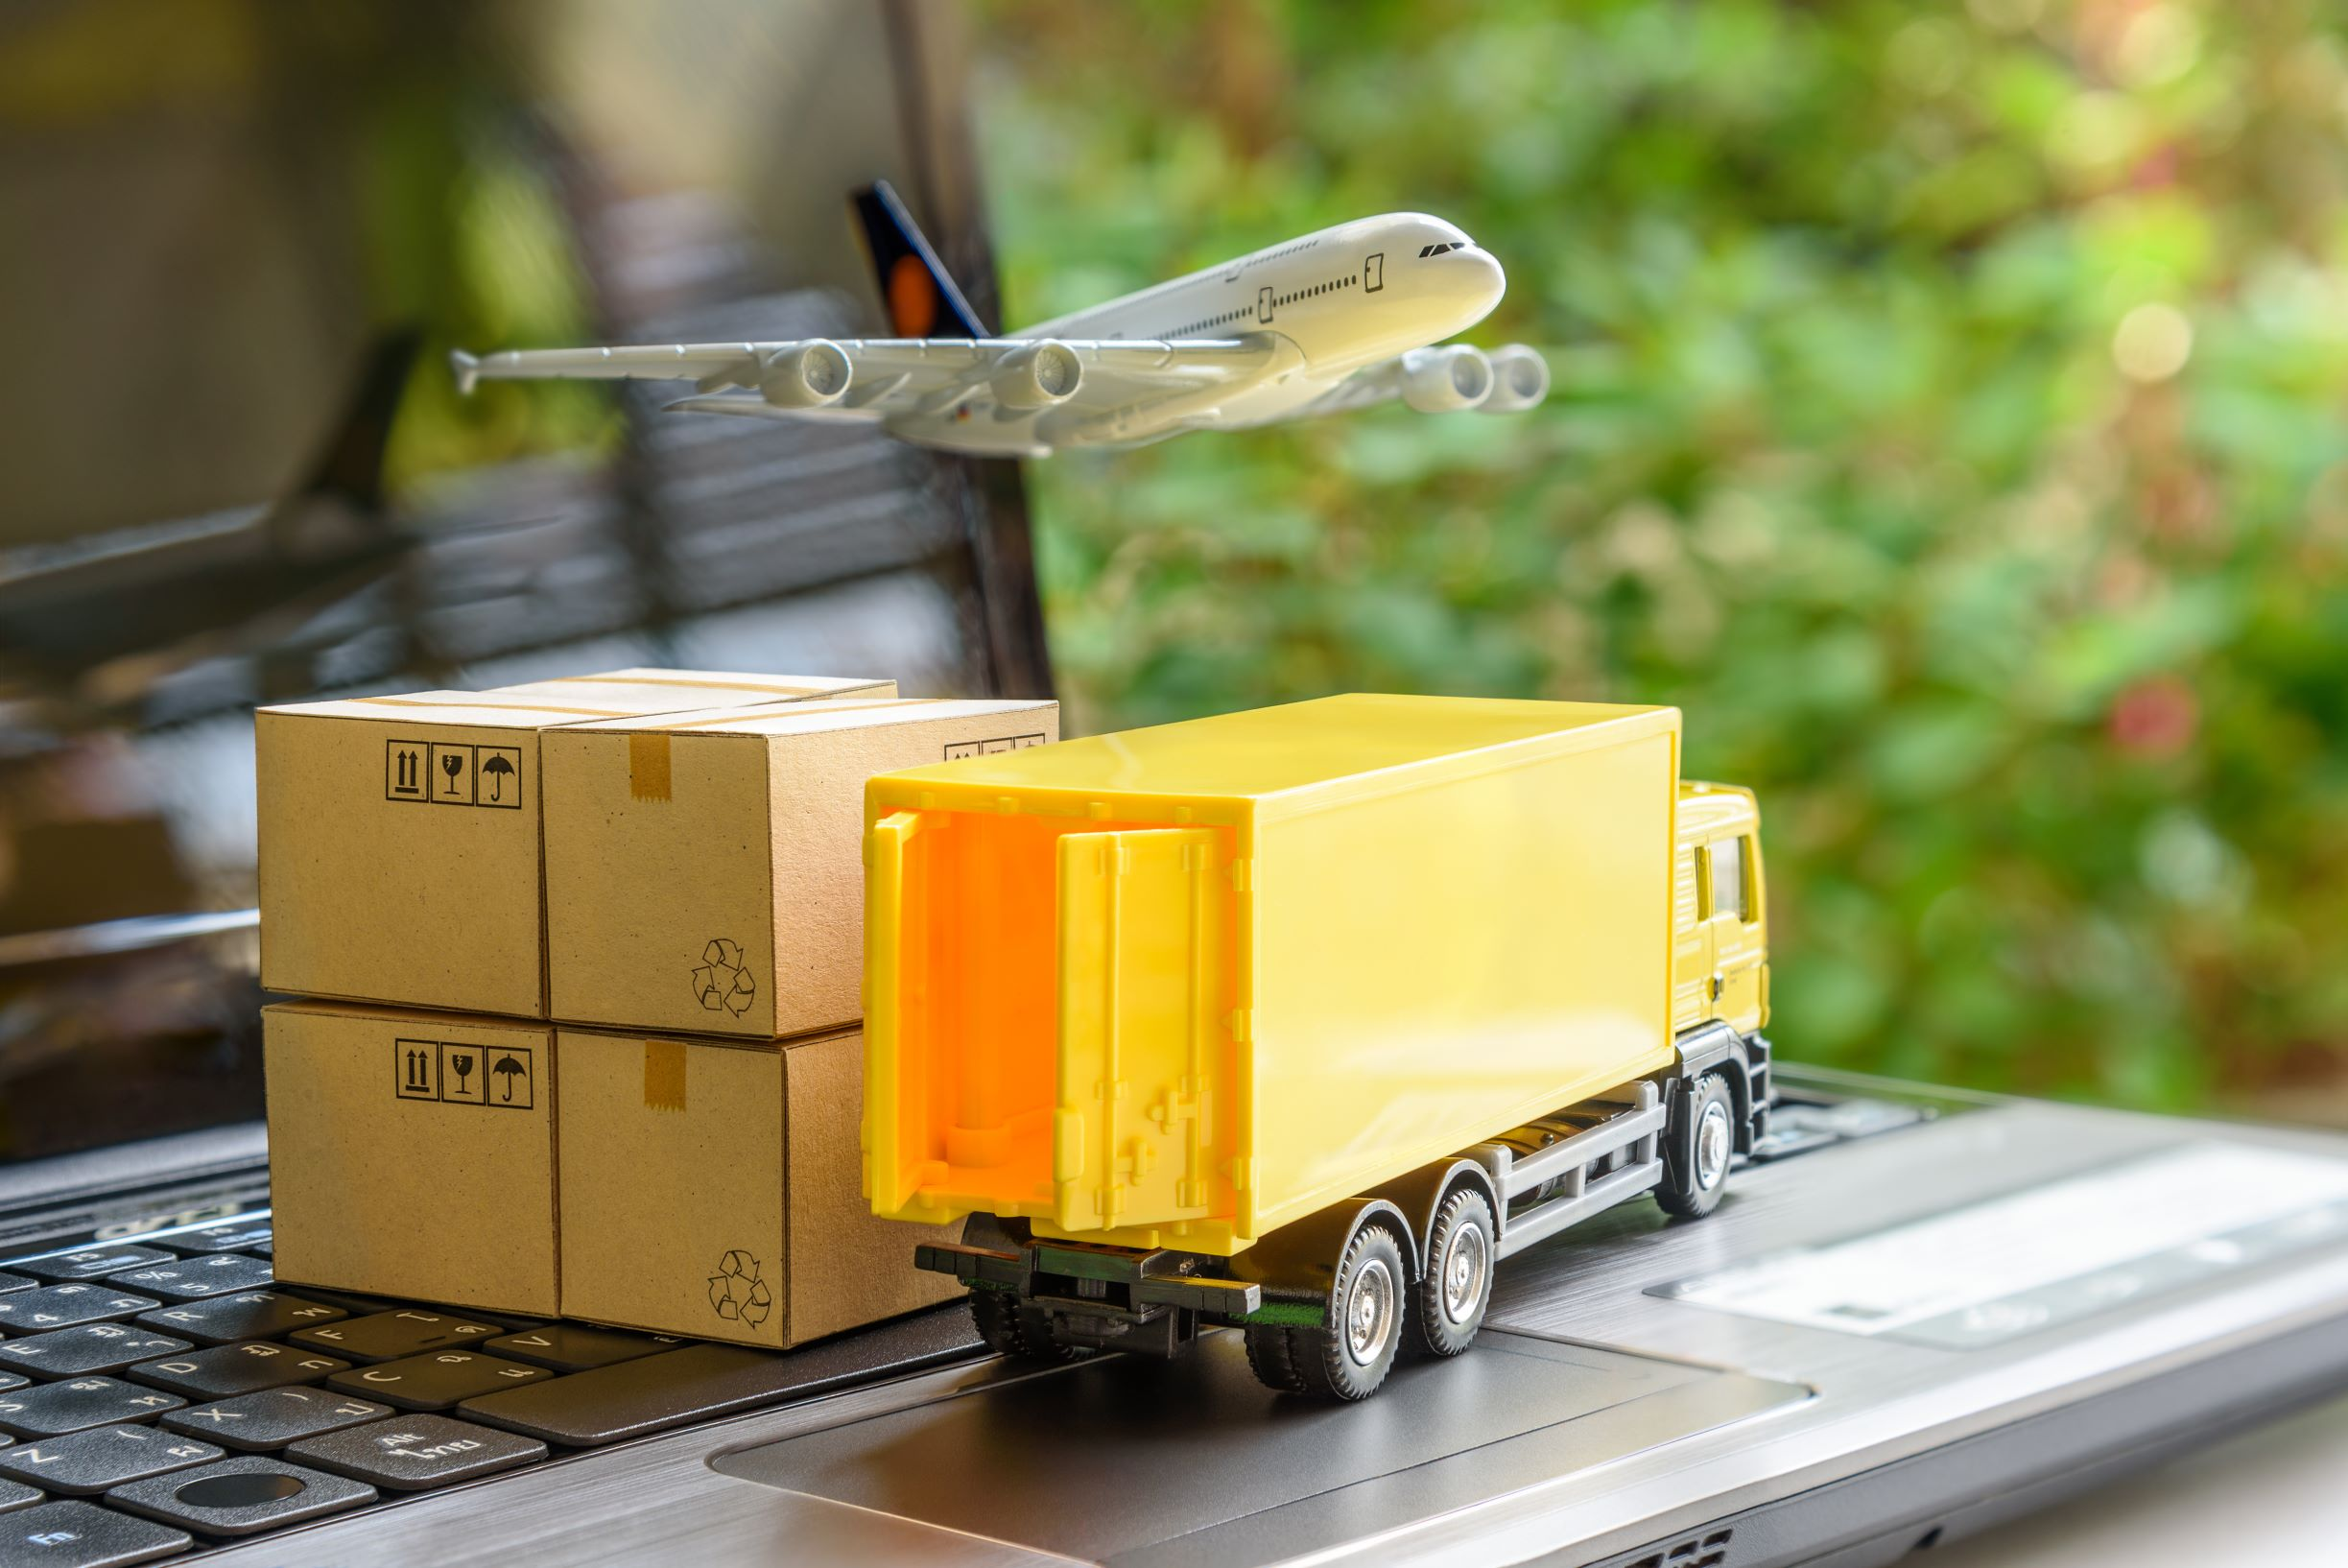 How digitization is helping Logistic Service Providers (LSPs) during COVID-19 and beyond